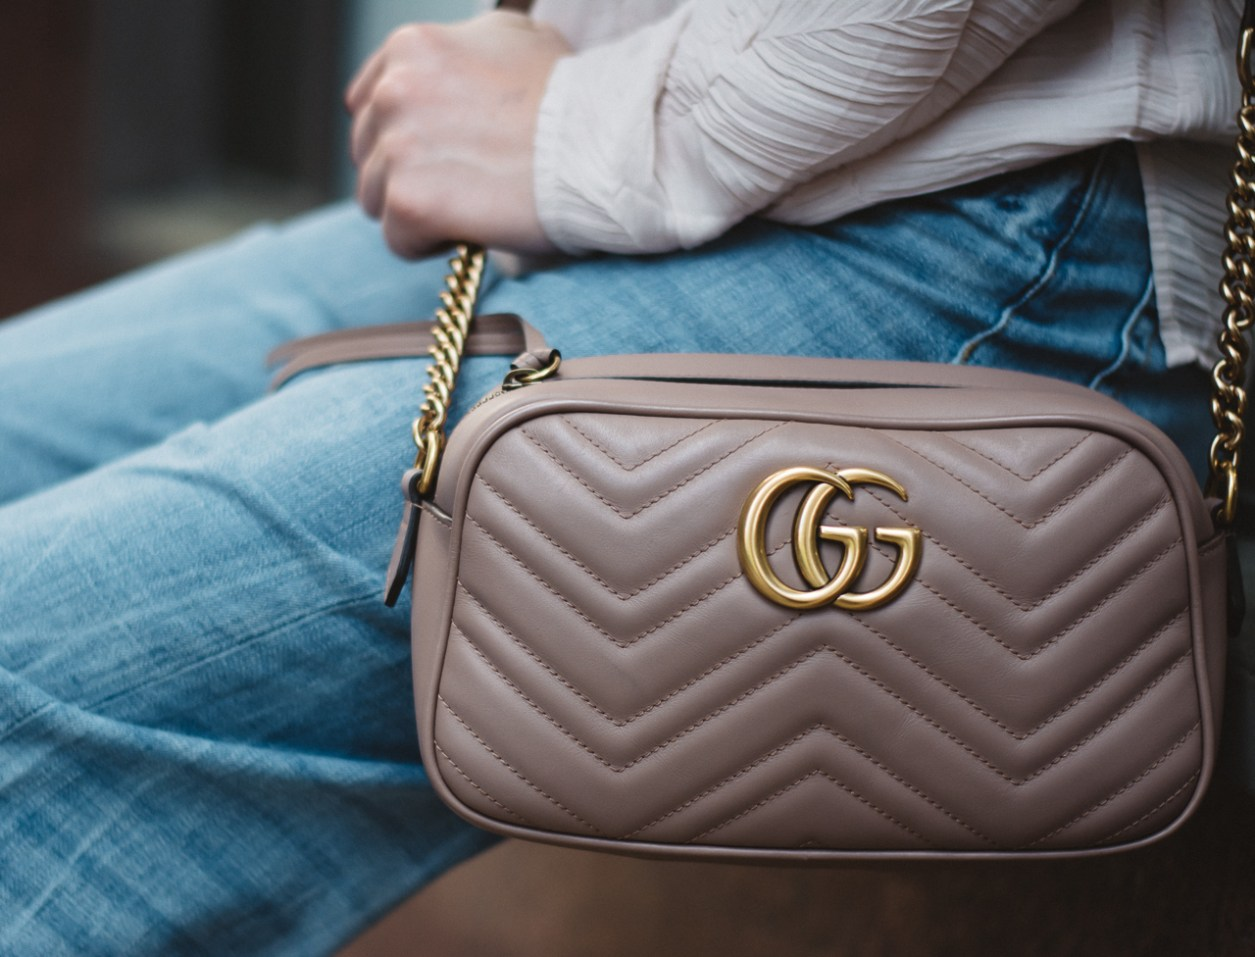 Gucci GG Marmont matelassé shoulder bag nude leather